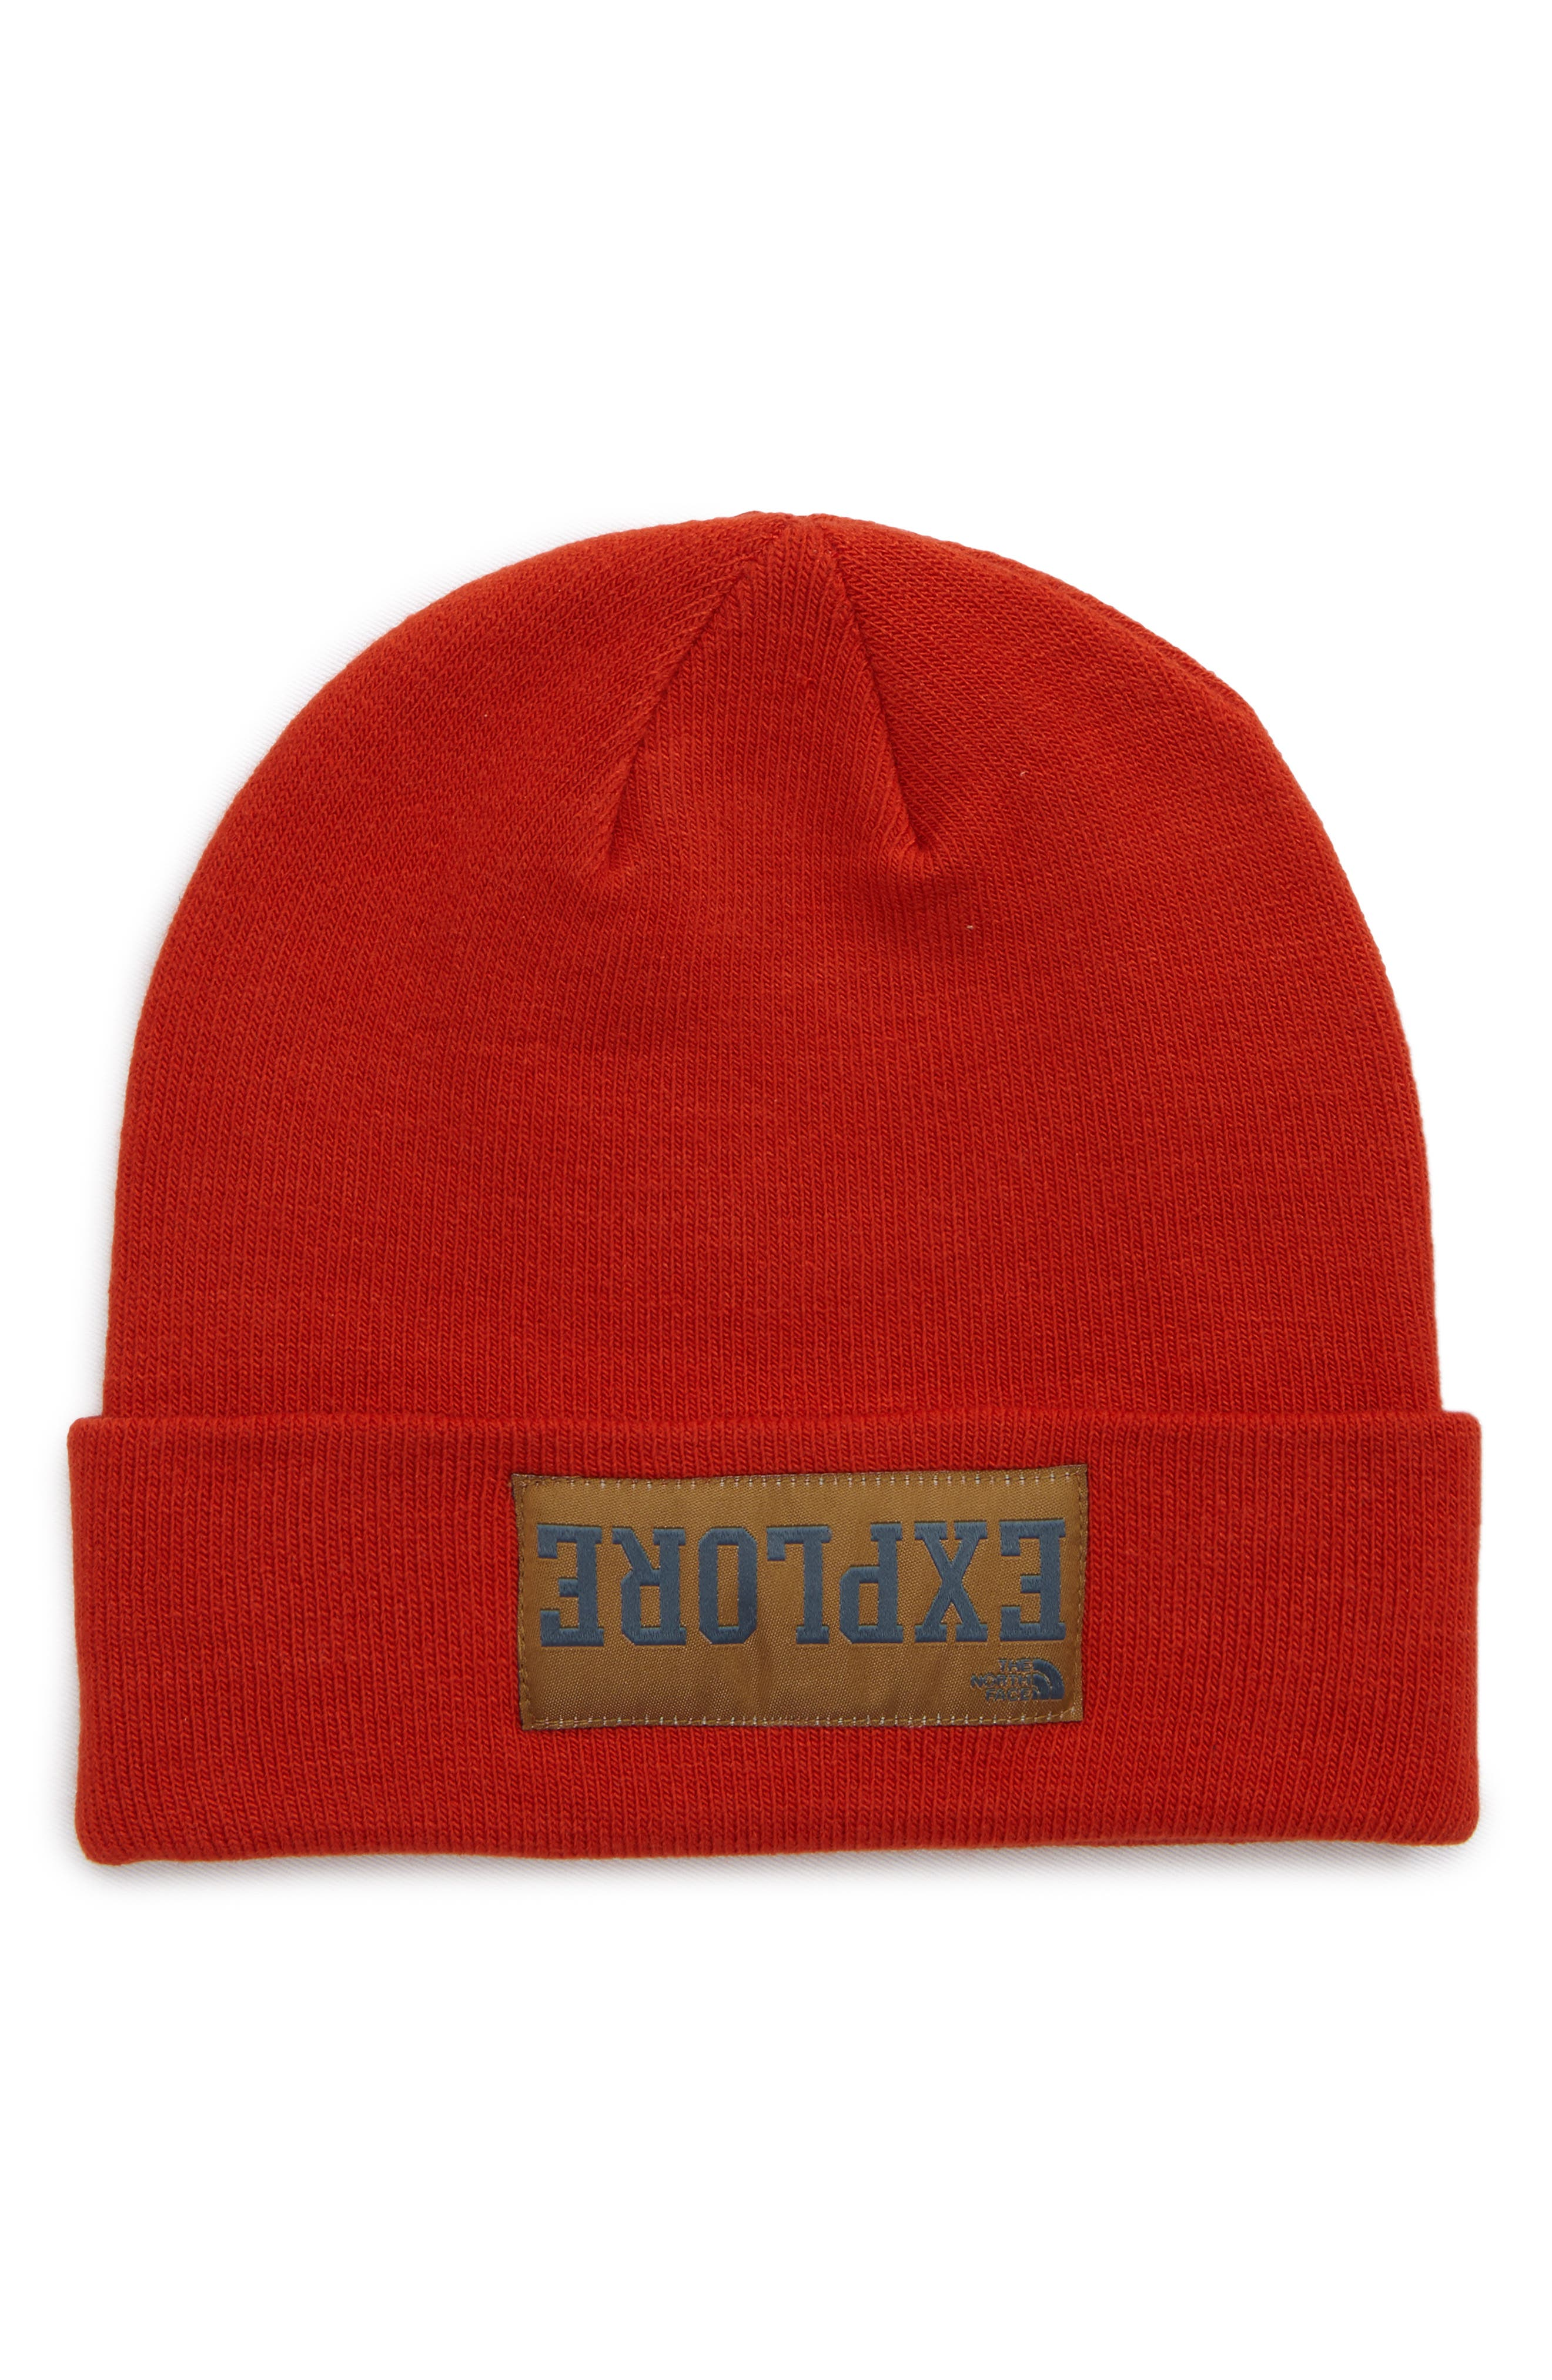 Dock Worker Beanie,                             Main thumbnail 1, color,                             801